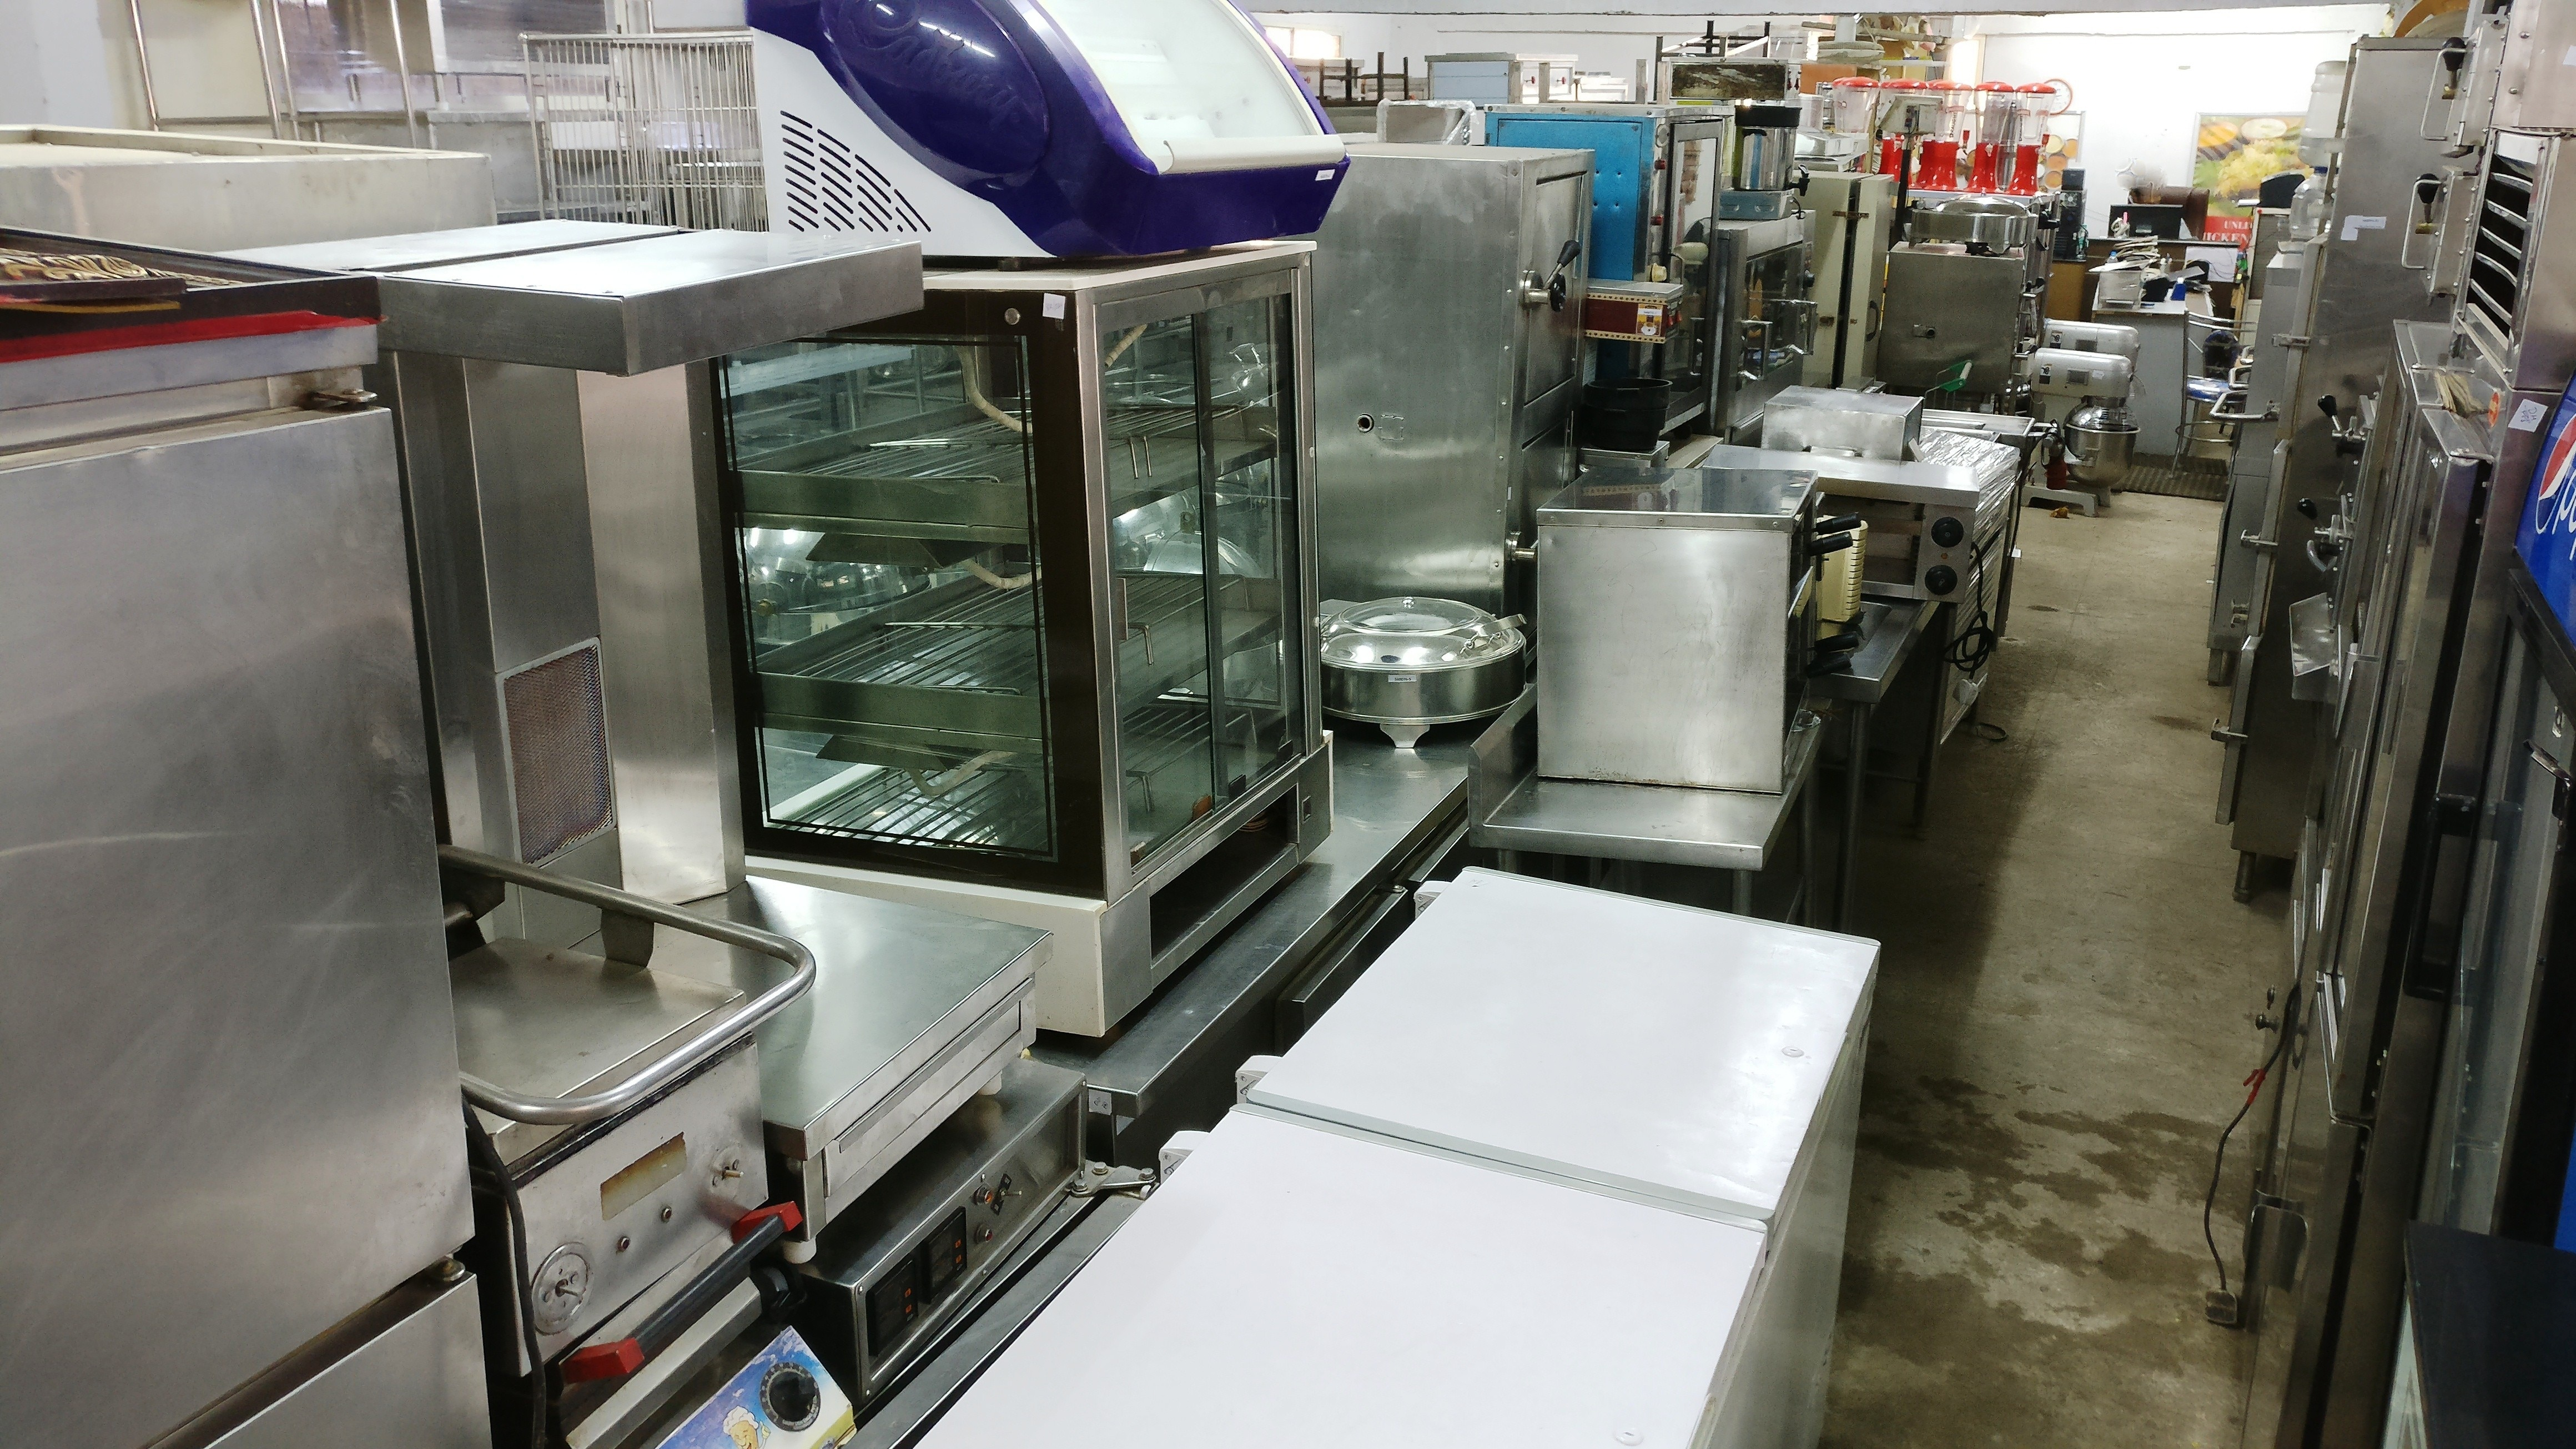 used commercial kitchen equipment buyers ninja system pulse bangalore equipments in